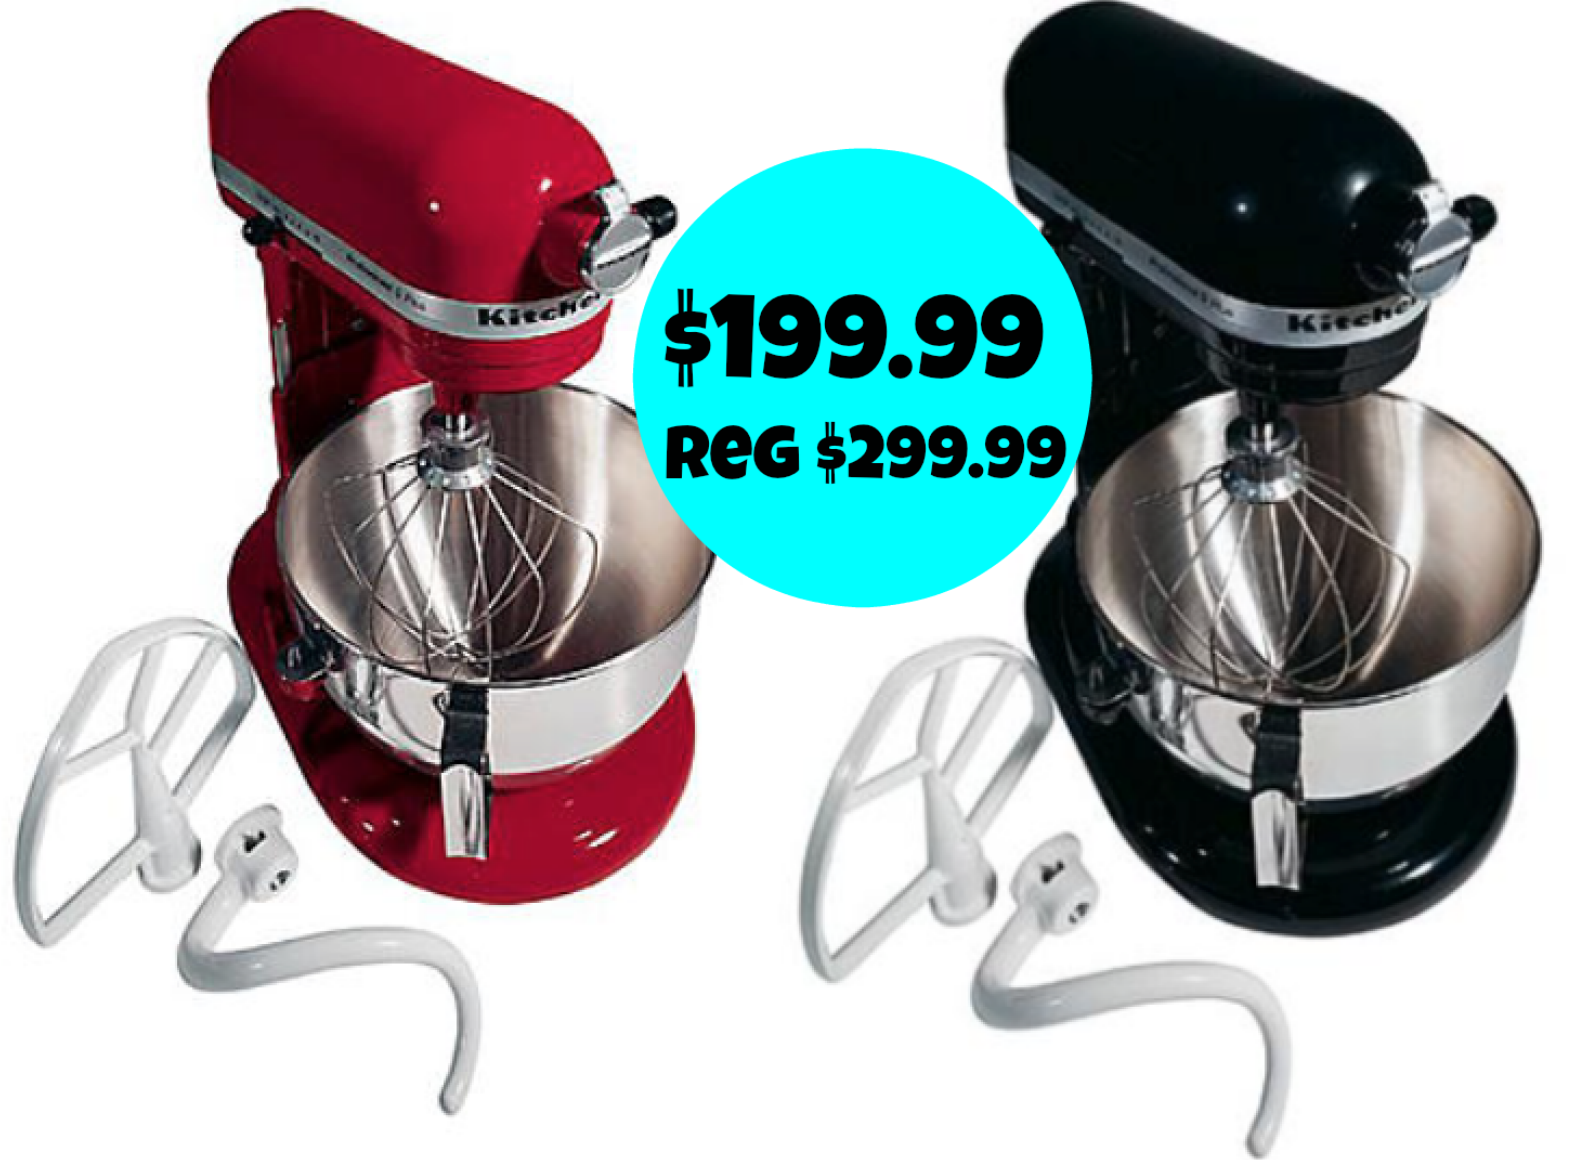 http://www.thebinderladies.com/2014/11/hot-searscom-kitchenaid-professional.html#.VG6N-IfduyM